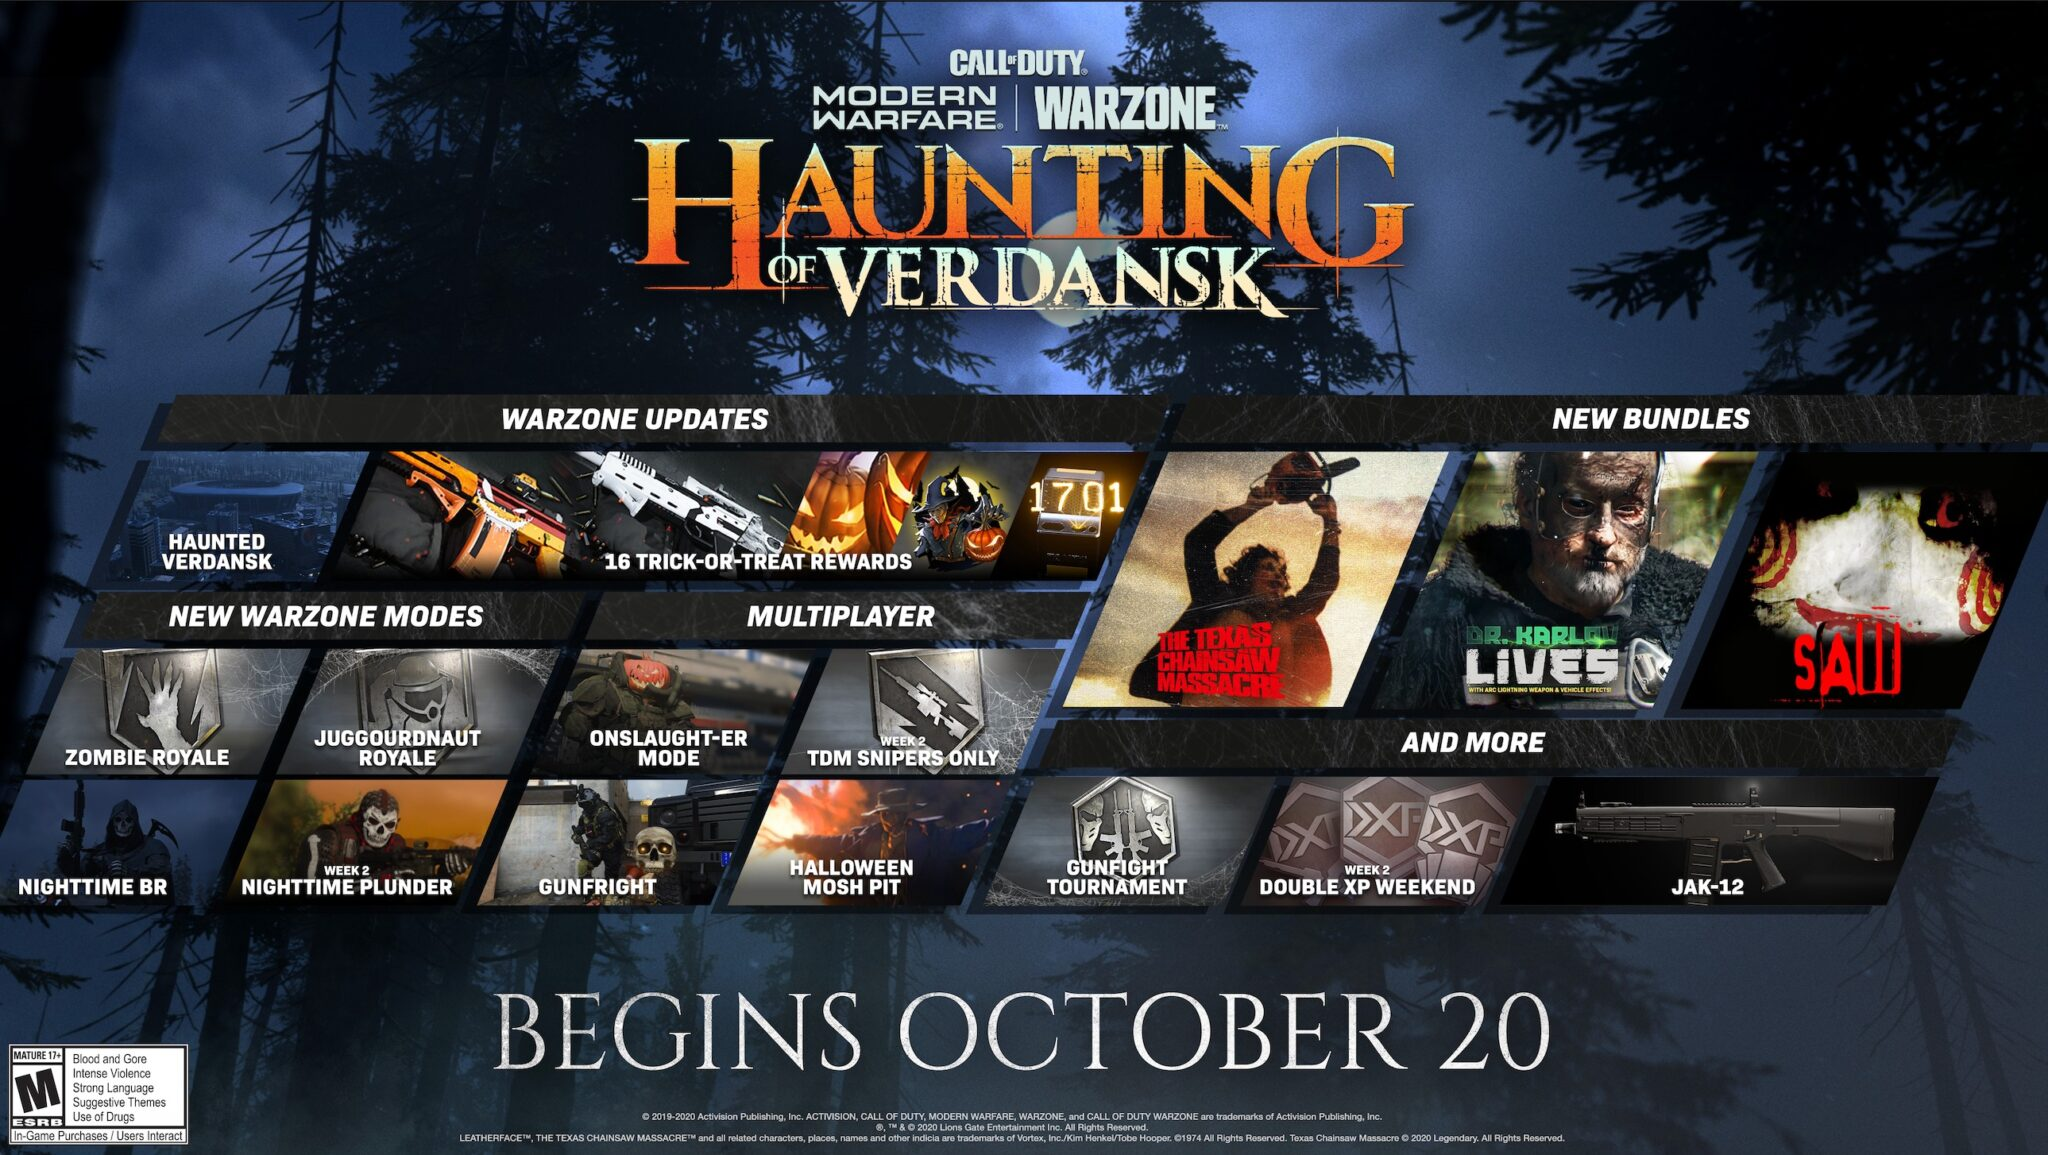 COD Warzone Activision حدث The Haunting of Verdansk